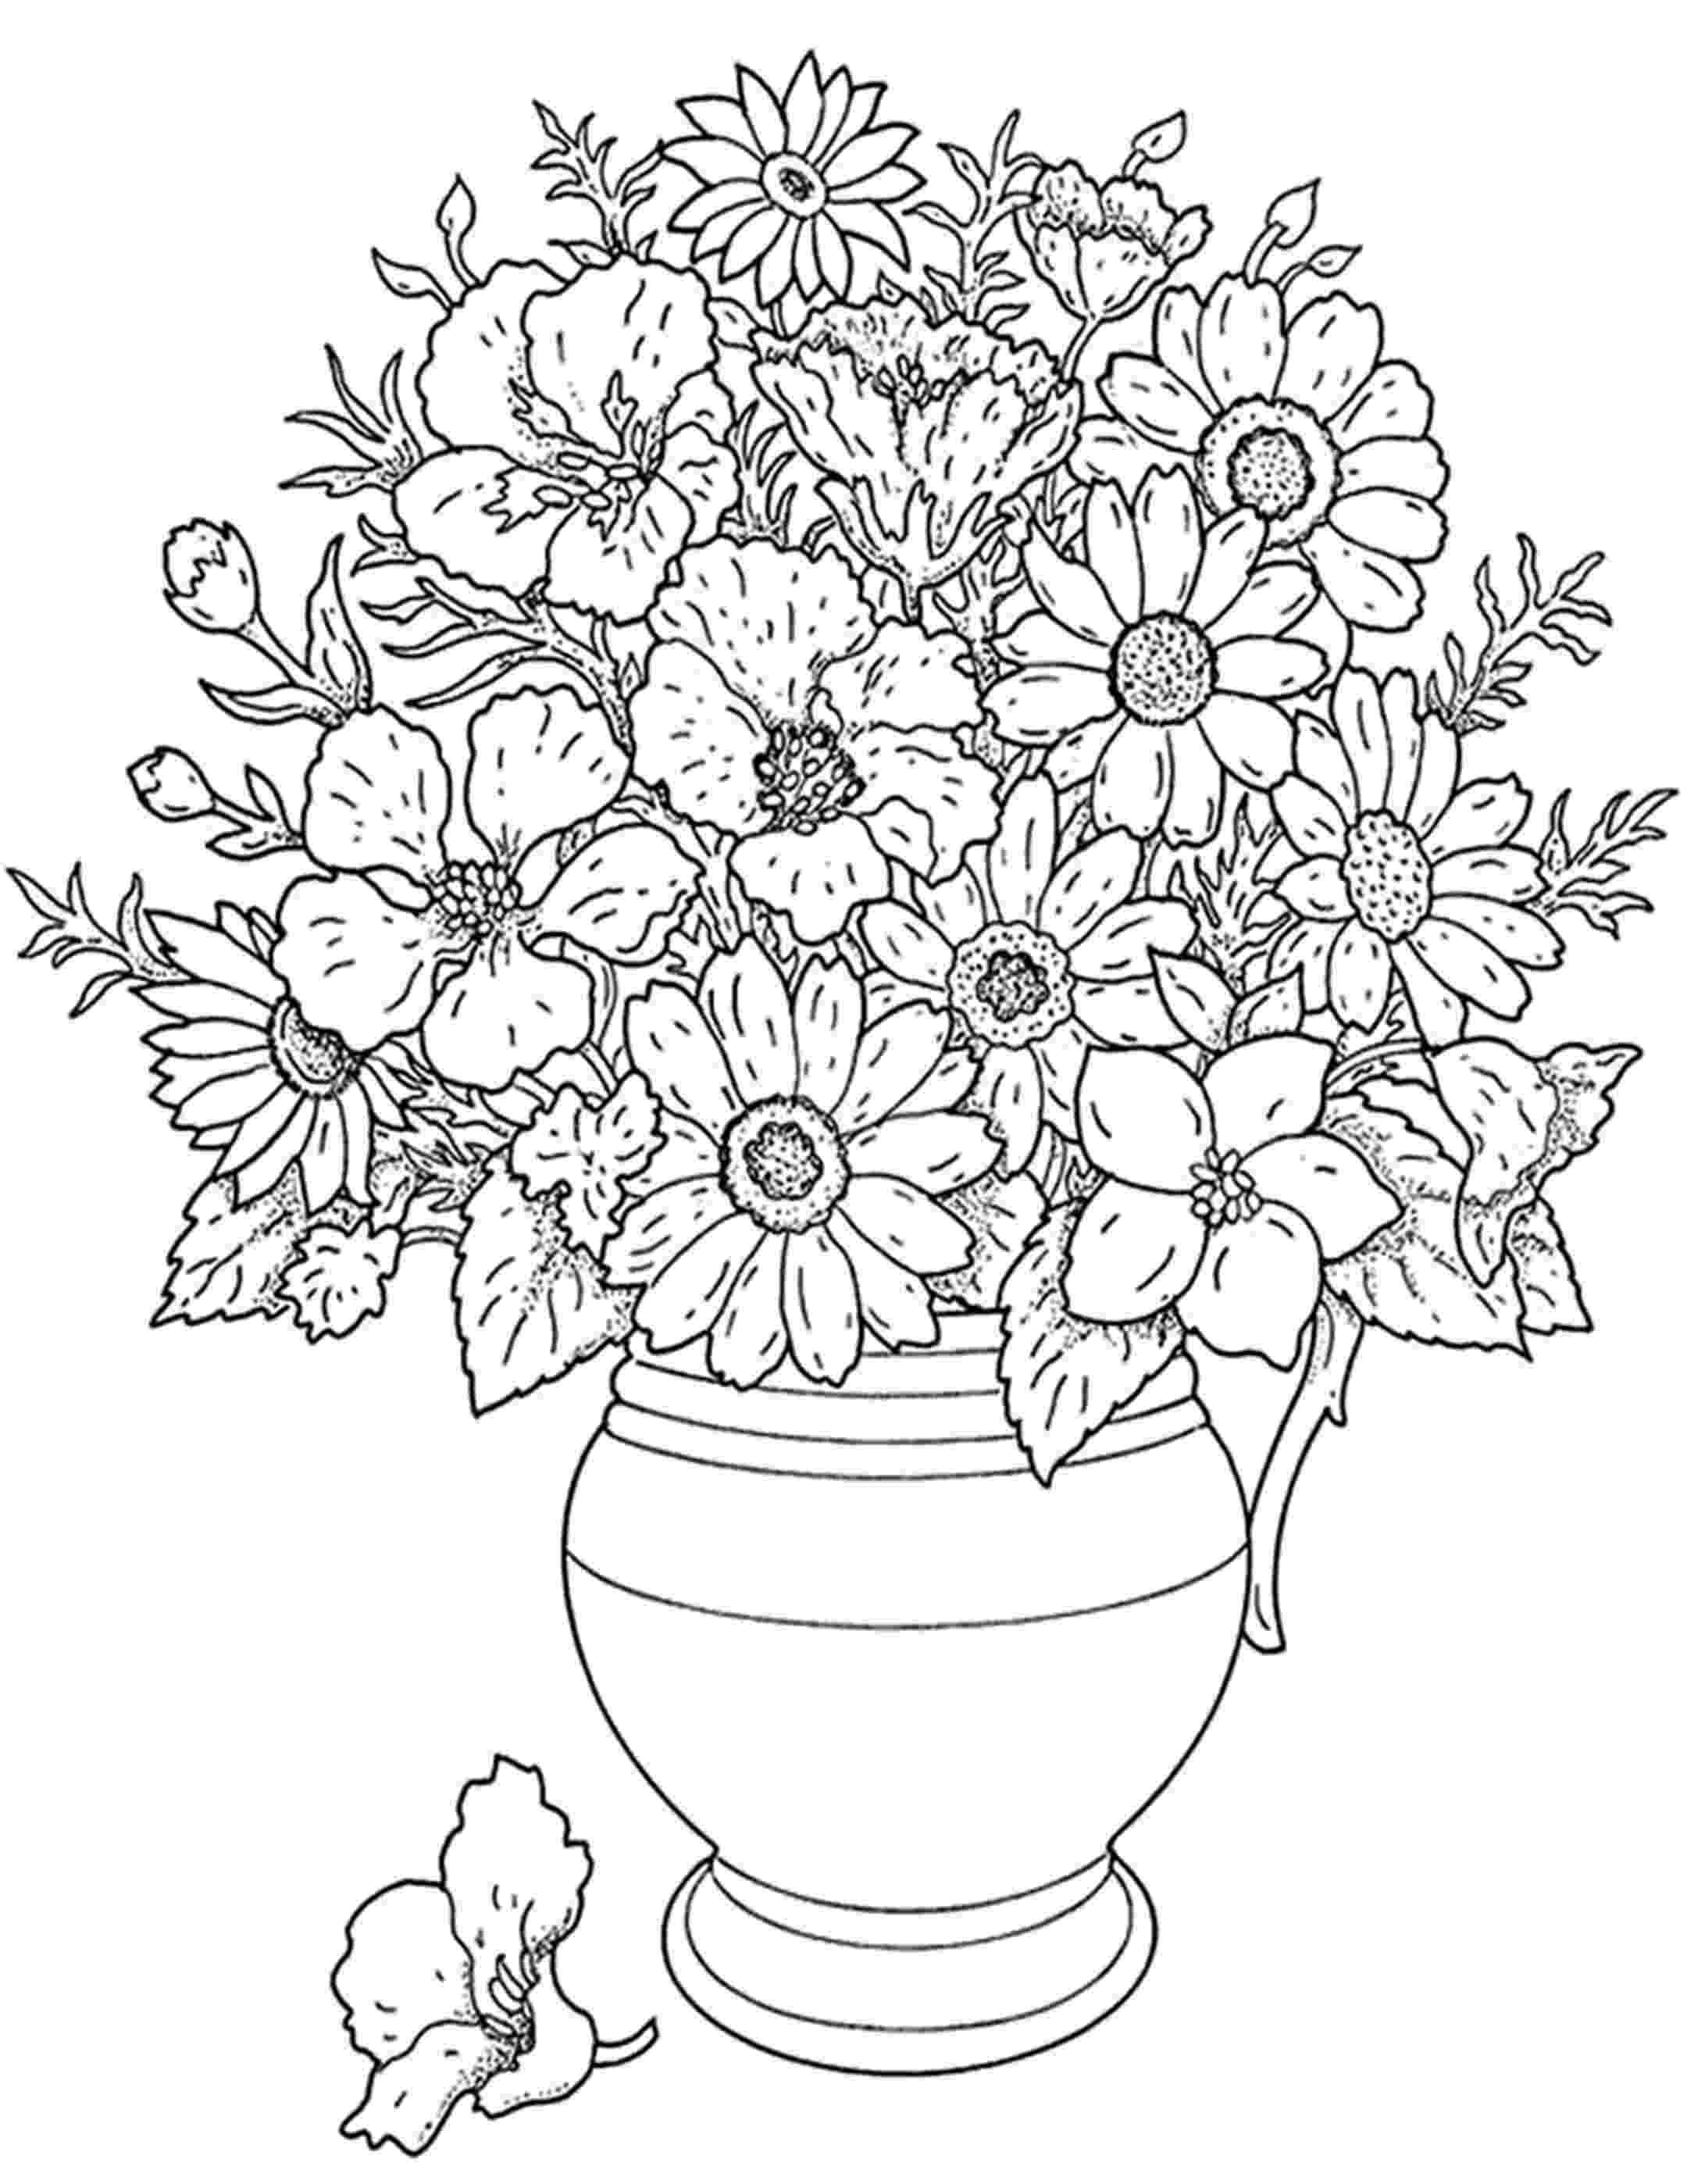 picture of flower for colouring simple flower coloring pages getcoloringpagescom for picture colouring of flower